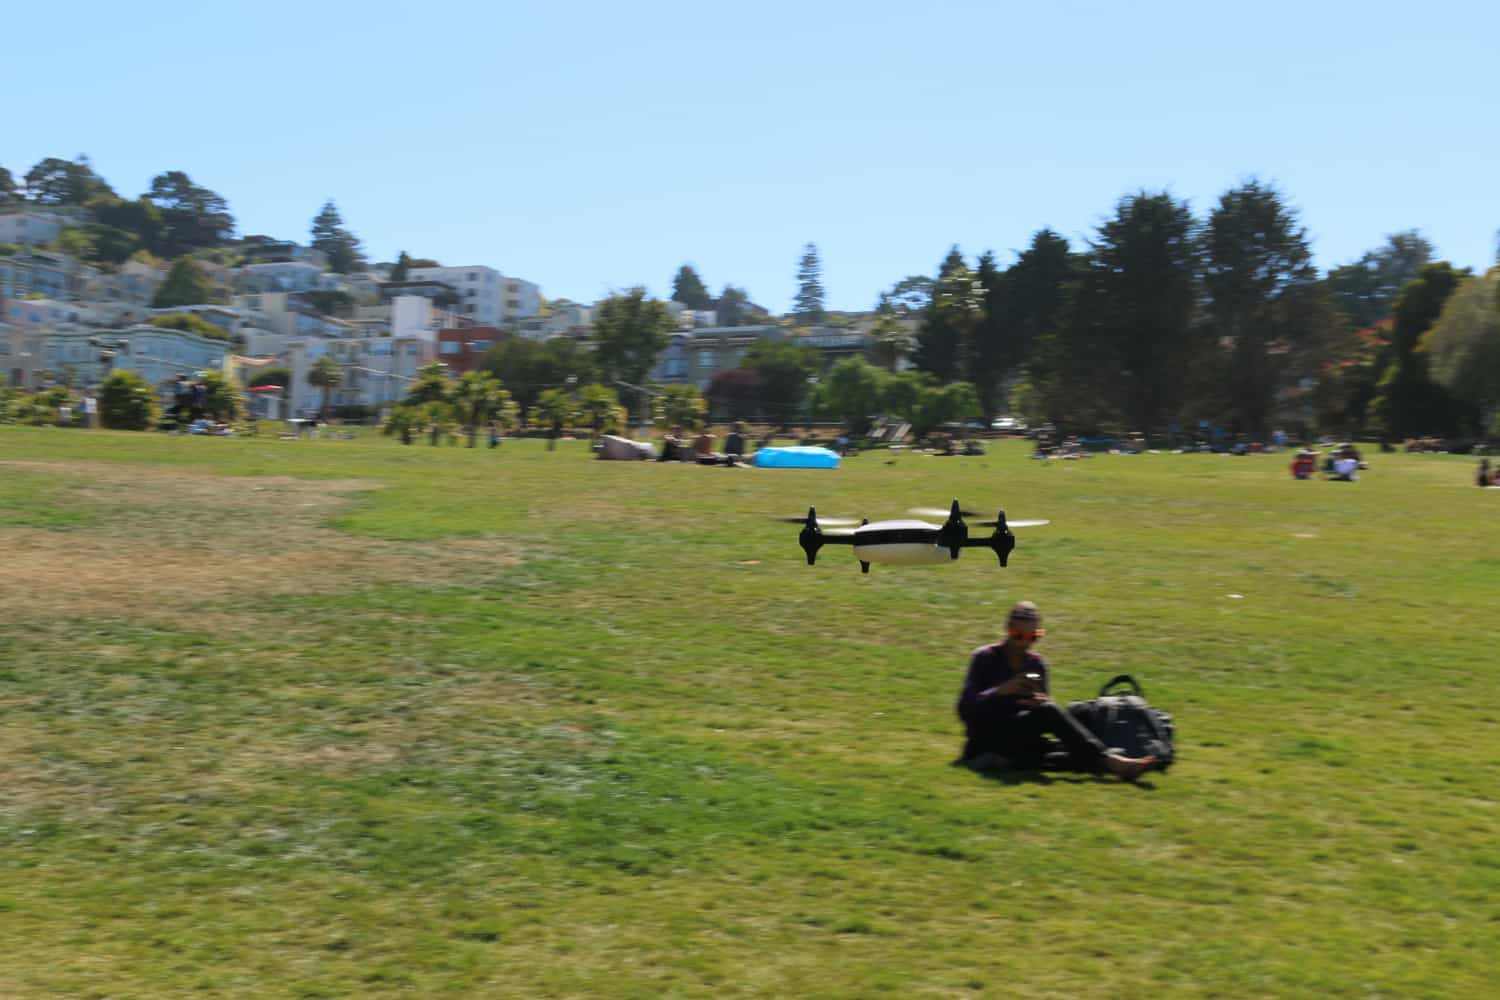 Teal Drone May be Very Fast But Apps Matter the Most - The